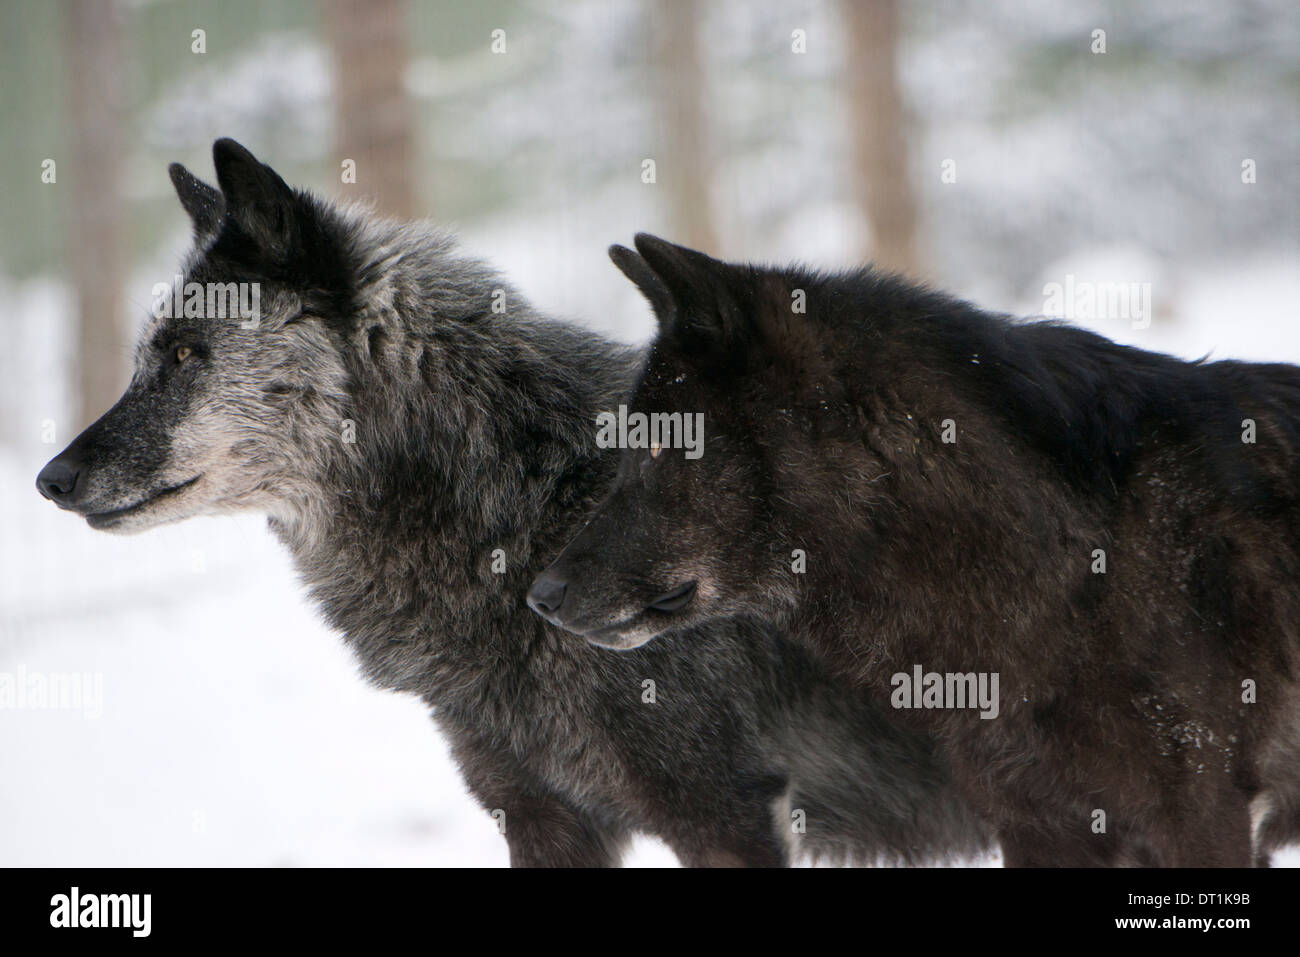 Two black melanistic variants of North American Timber wolf (Canis Lupus) in snow, Austria, Europe - Stock Image